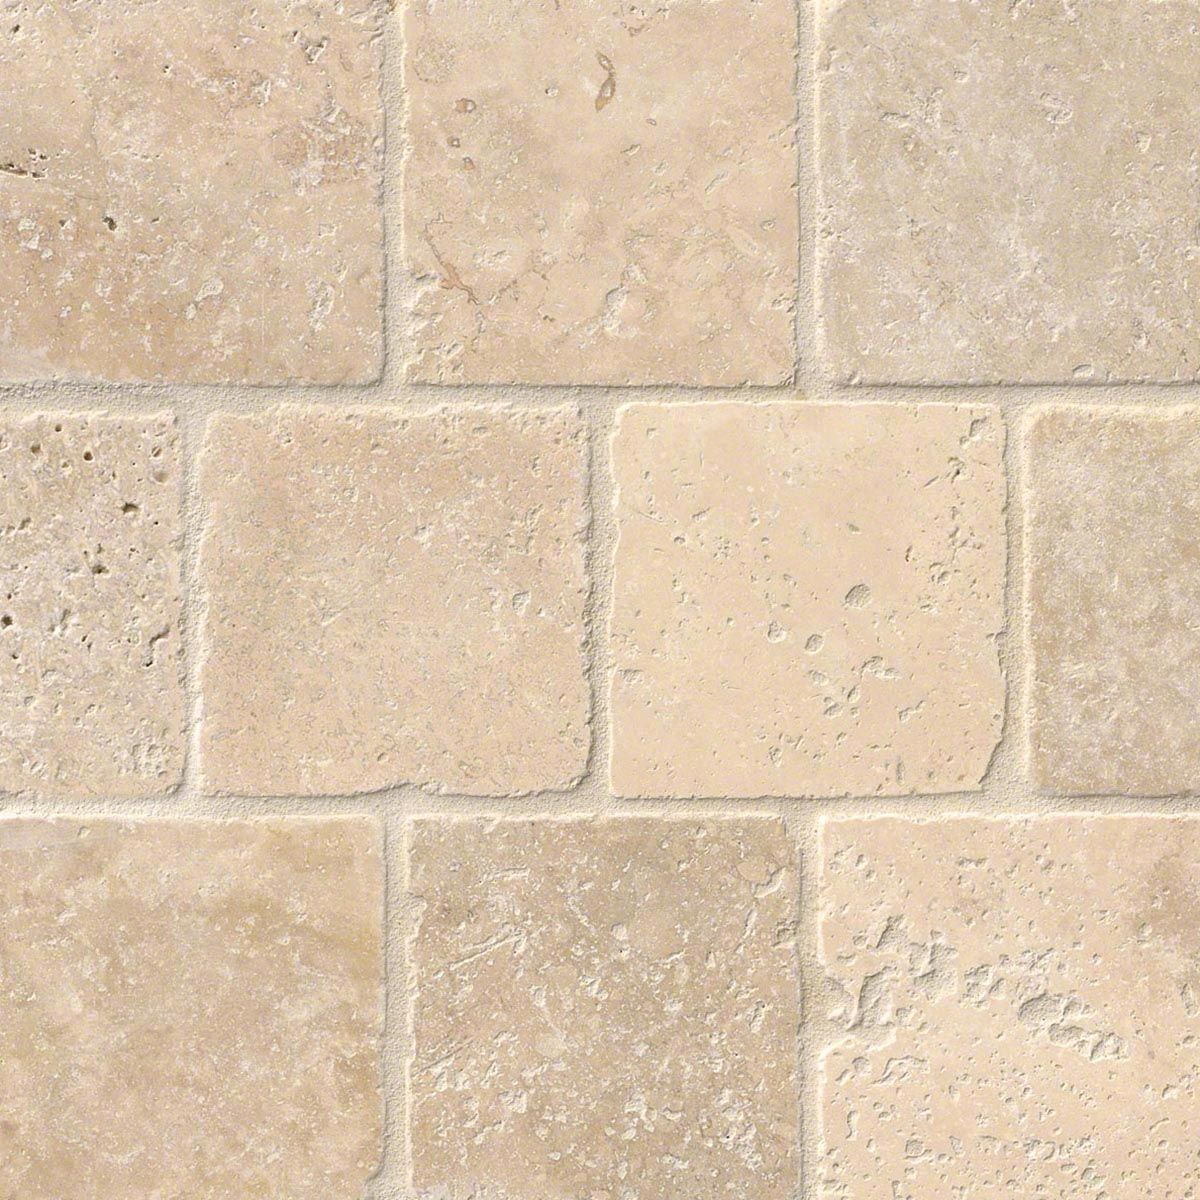 Tuscany Classic 4x4 Tumbled Tile Stone Backsplash Backsplash Tiles Travertine Tile